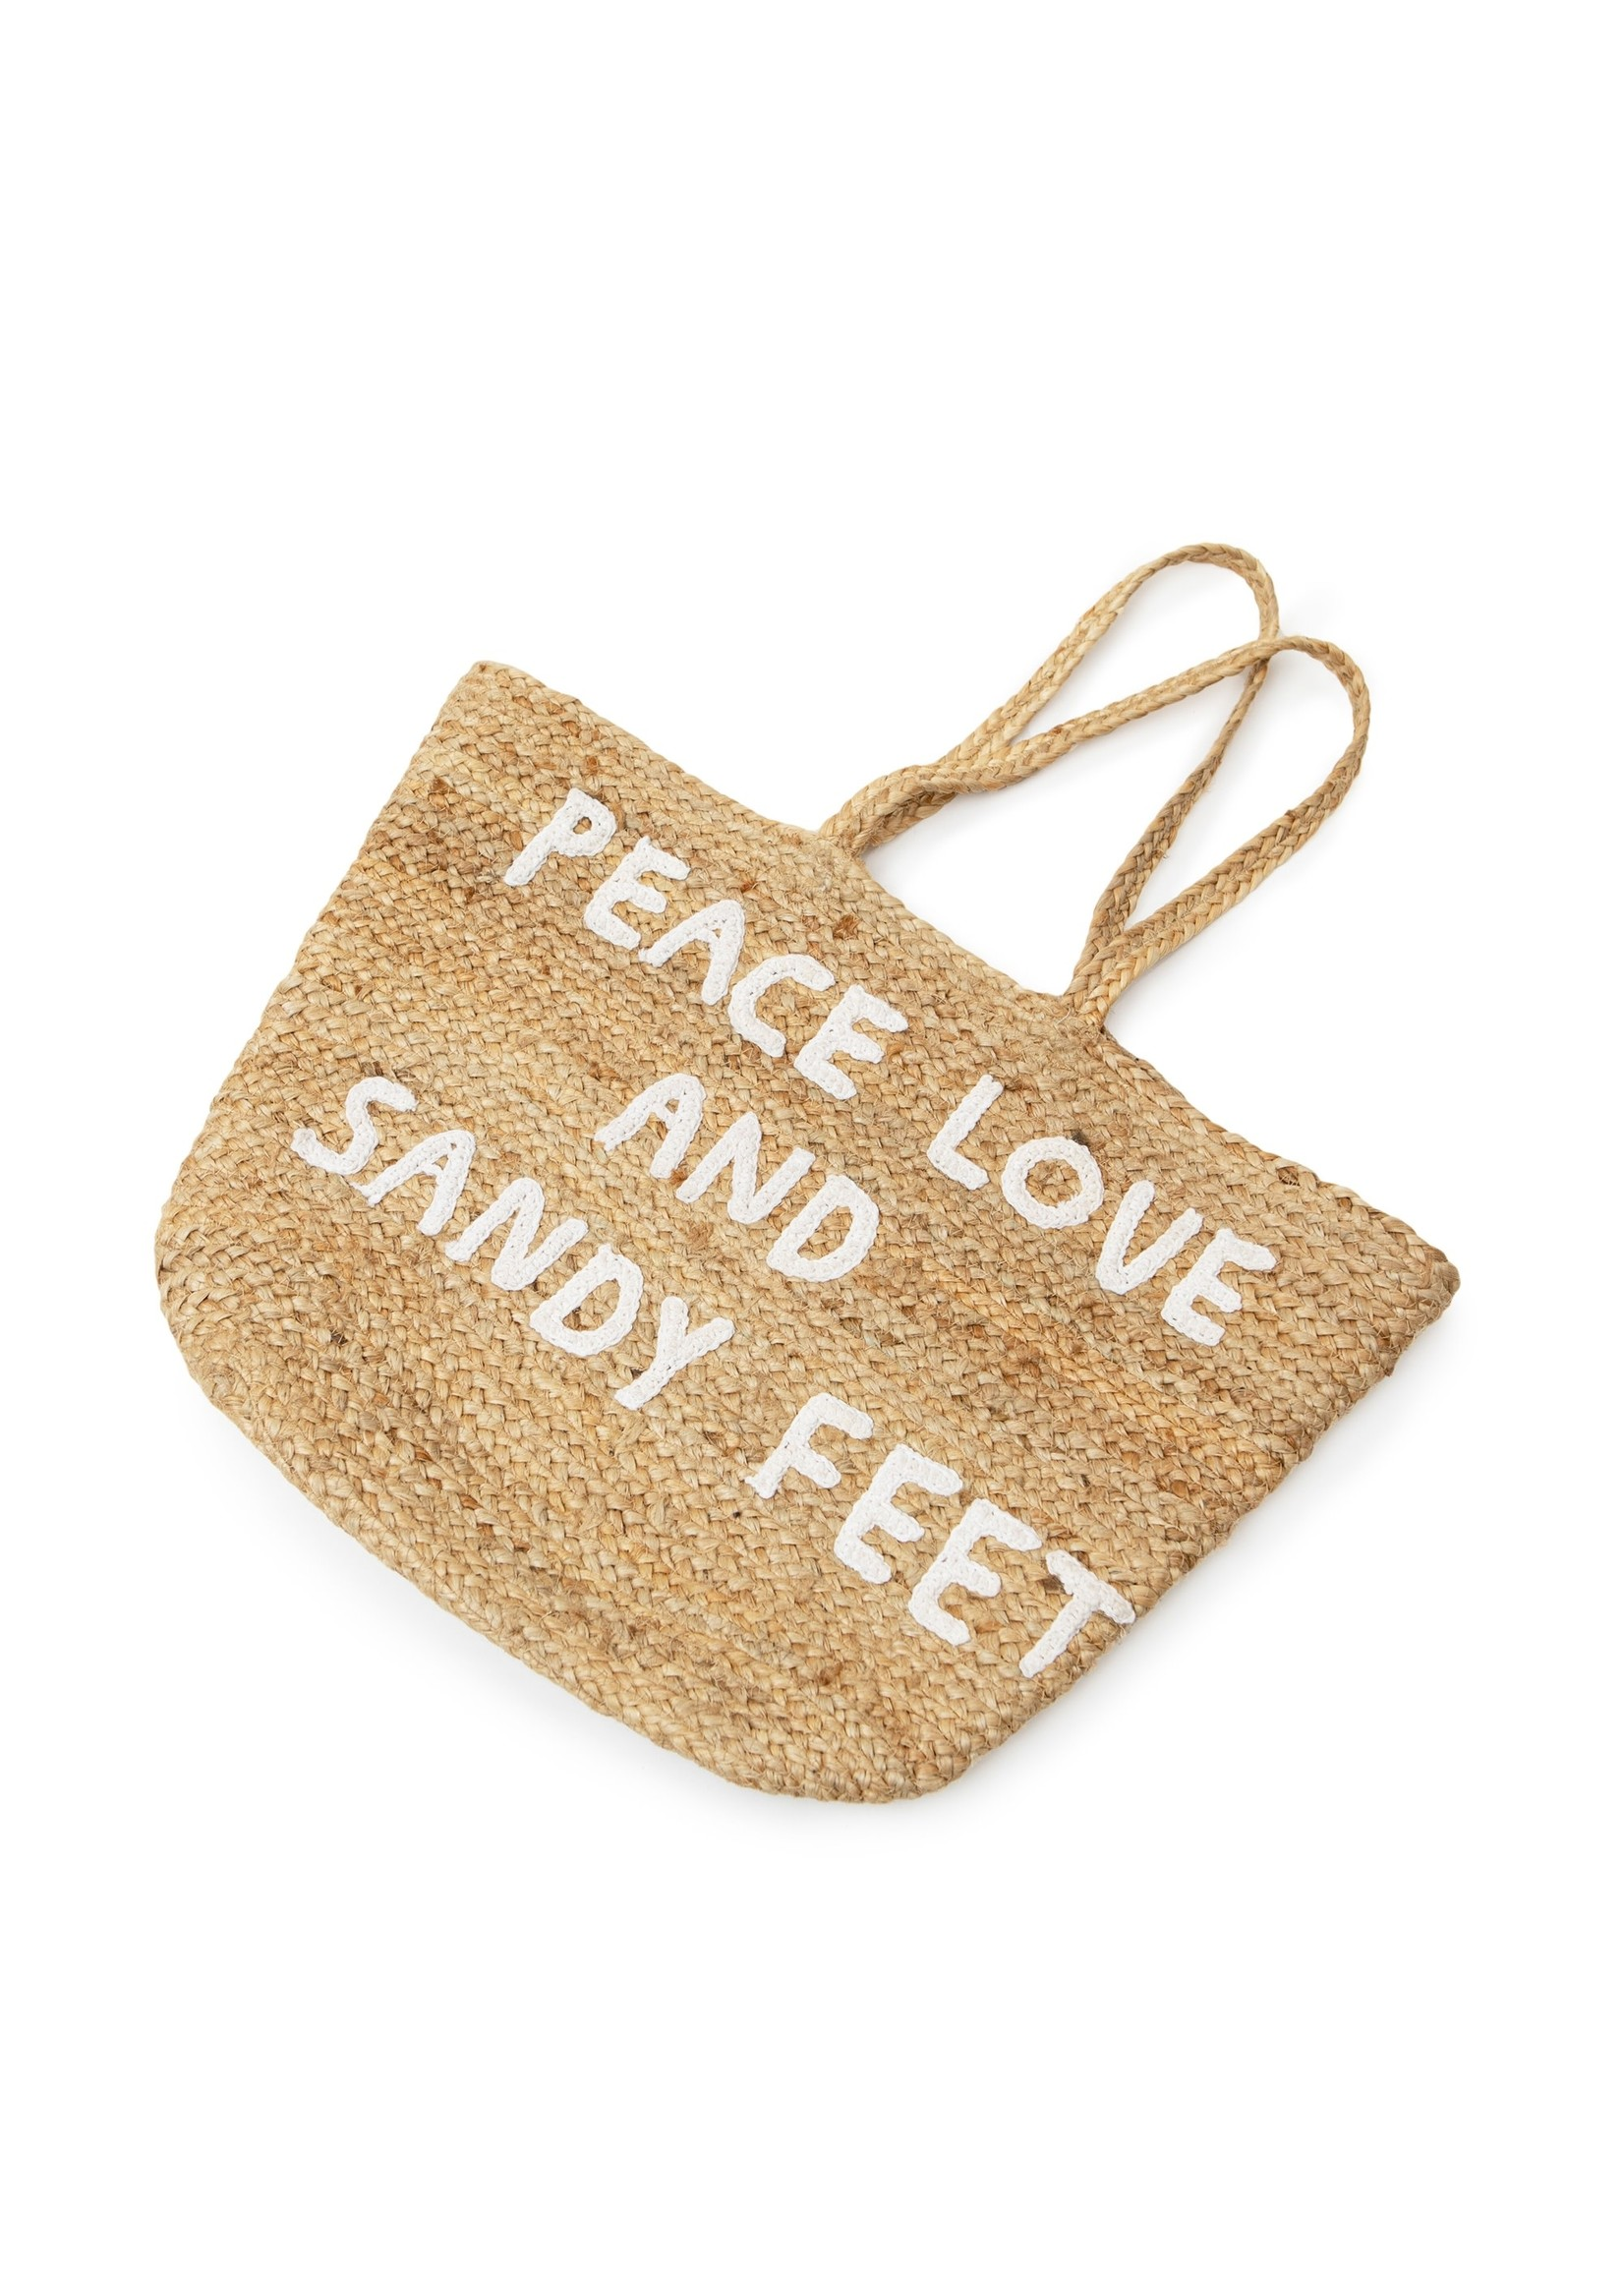 B100 Jute Tote Peace Love and Sandy Large